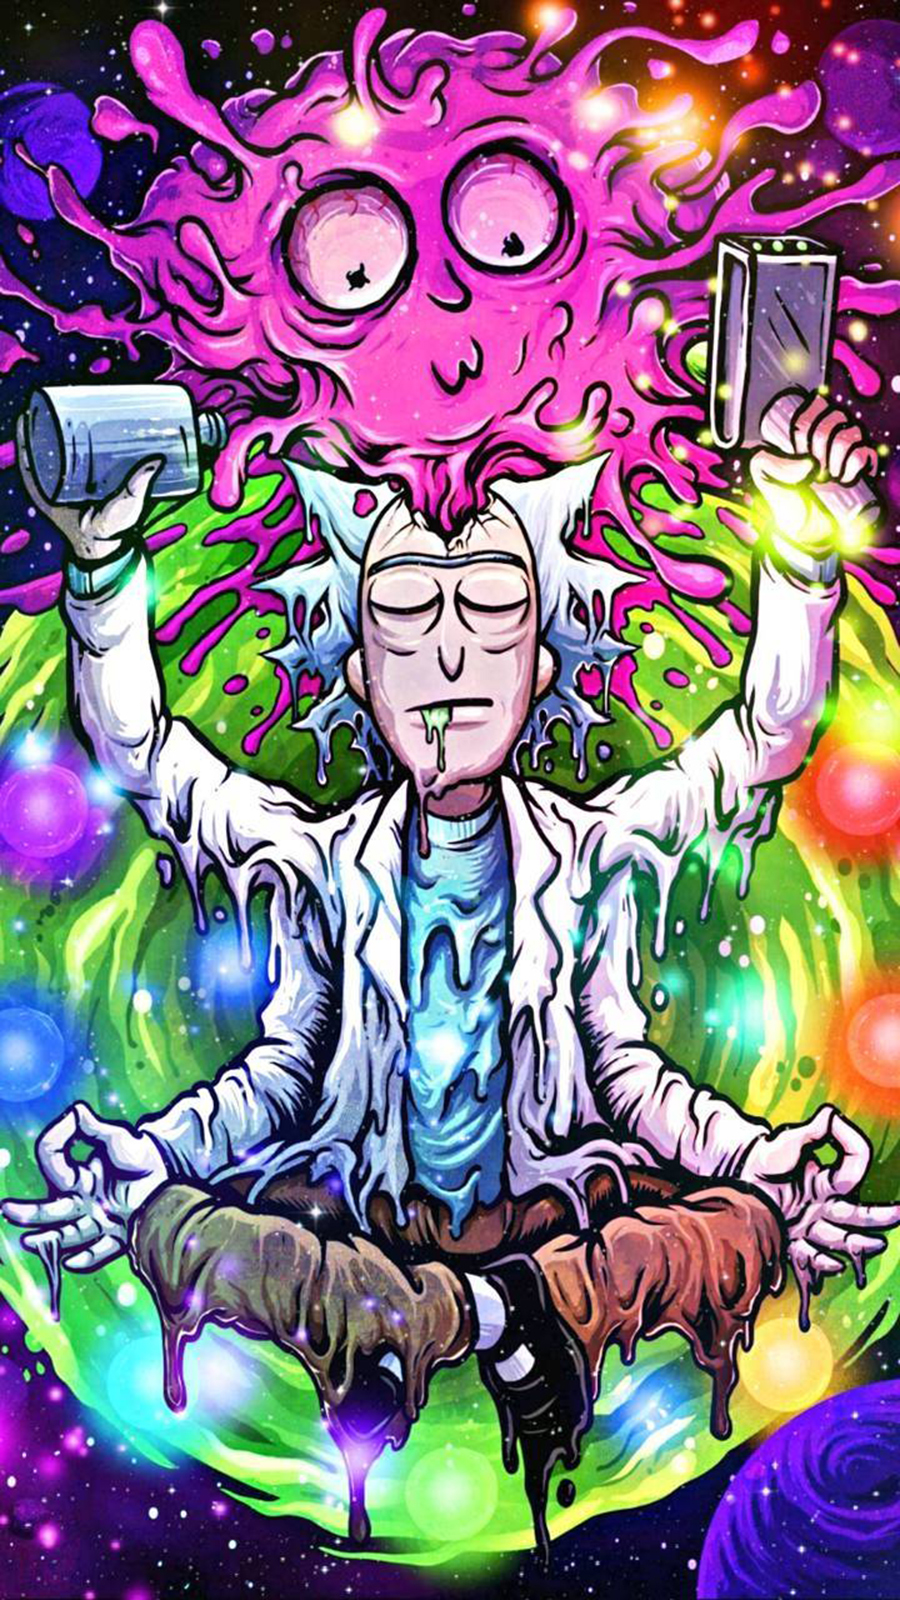 RICK & MORTY Art Wallpapers Free Download For Your Device